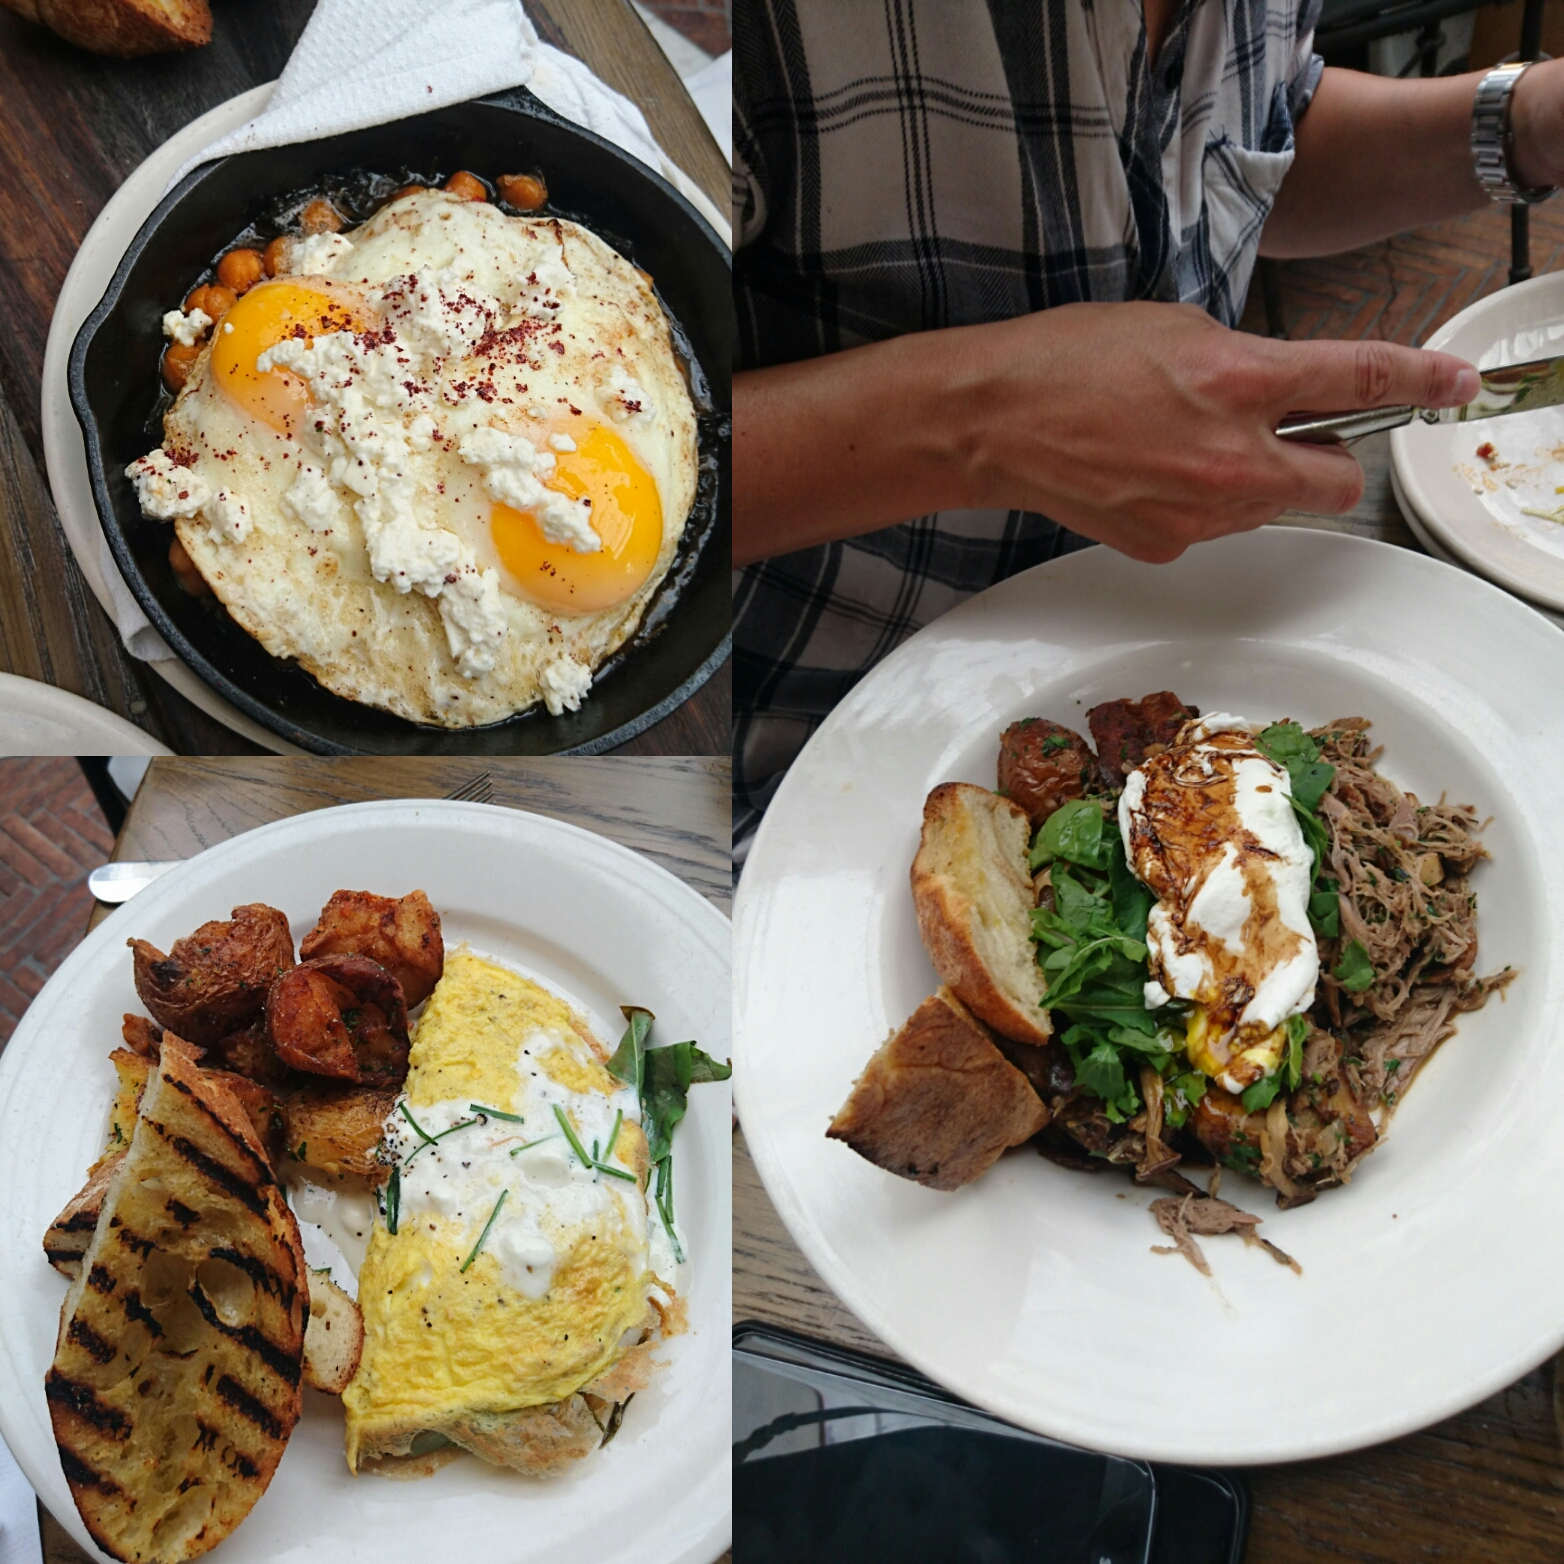 Bring your friends so you can sample the range of brunch items, from the simple omelete to the pulled pork!